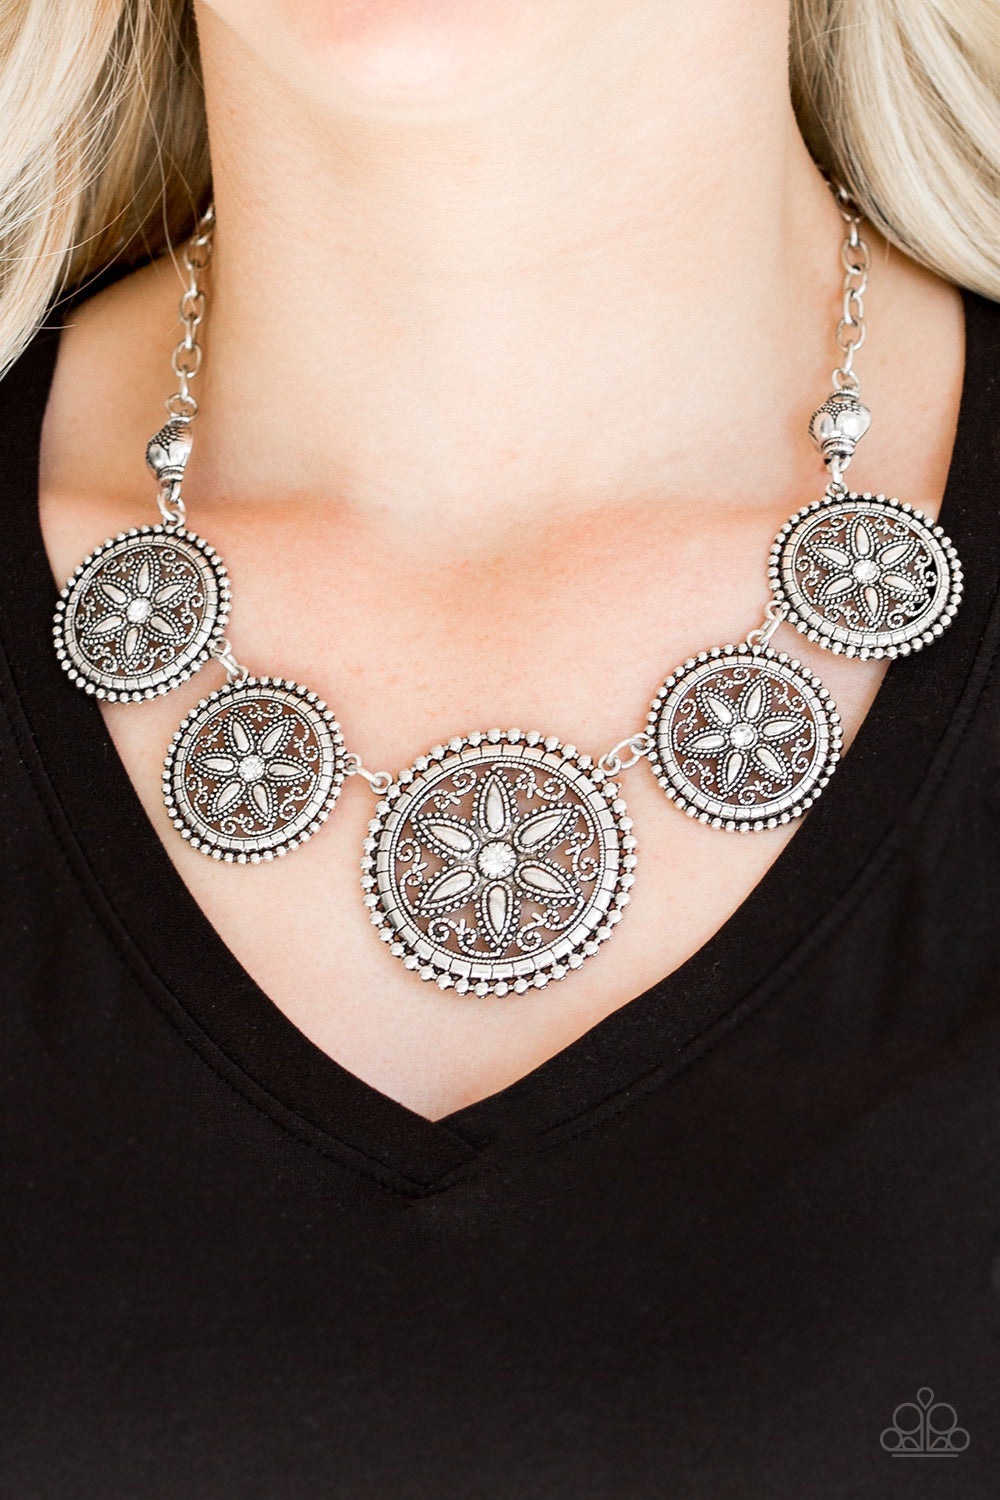 Paparazzi Jewelry Necklace  Written In The STAR LILIES - White